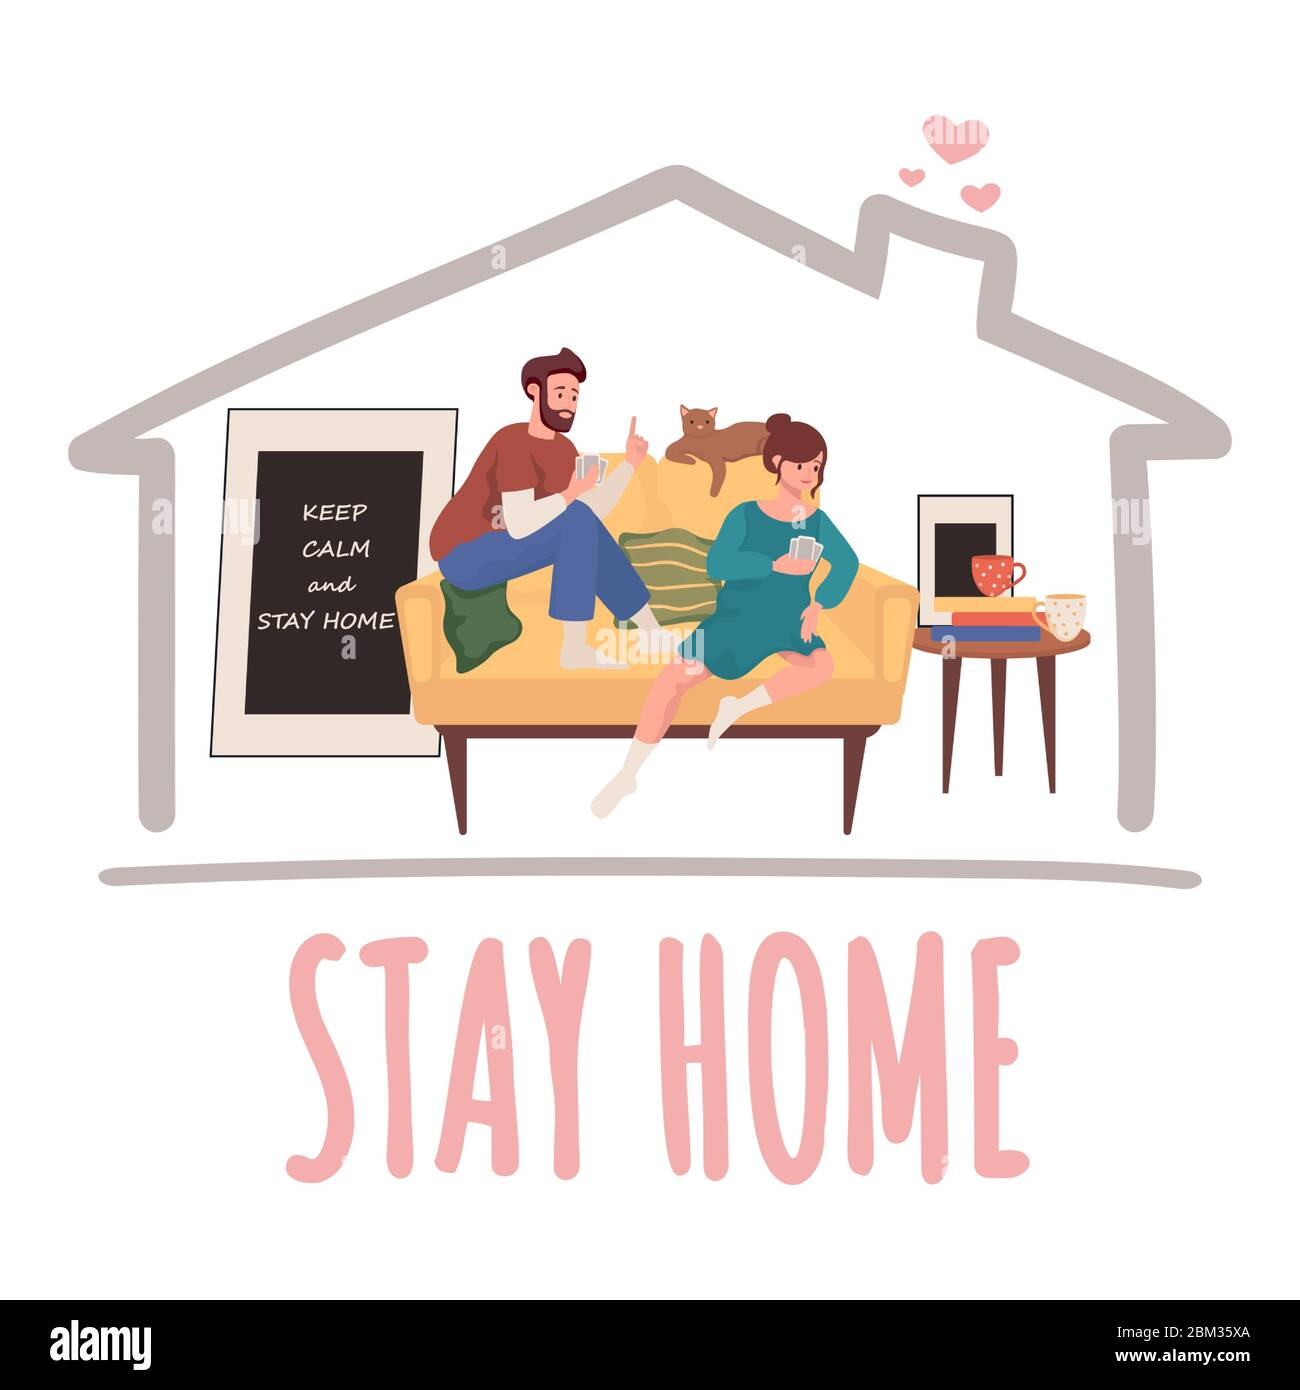 Stay home vector banner design. Man and woman sitting on sofa and play cards vector flat illustration. Quarantine and self isolation during global pandemic of Coronavirus Covid-19 poster concept. Stock Vector